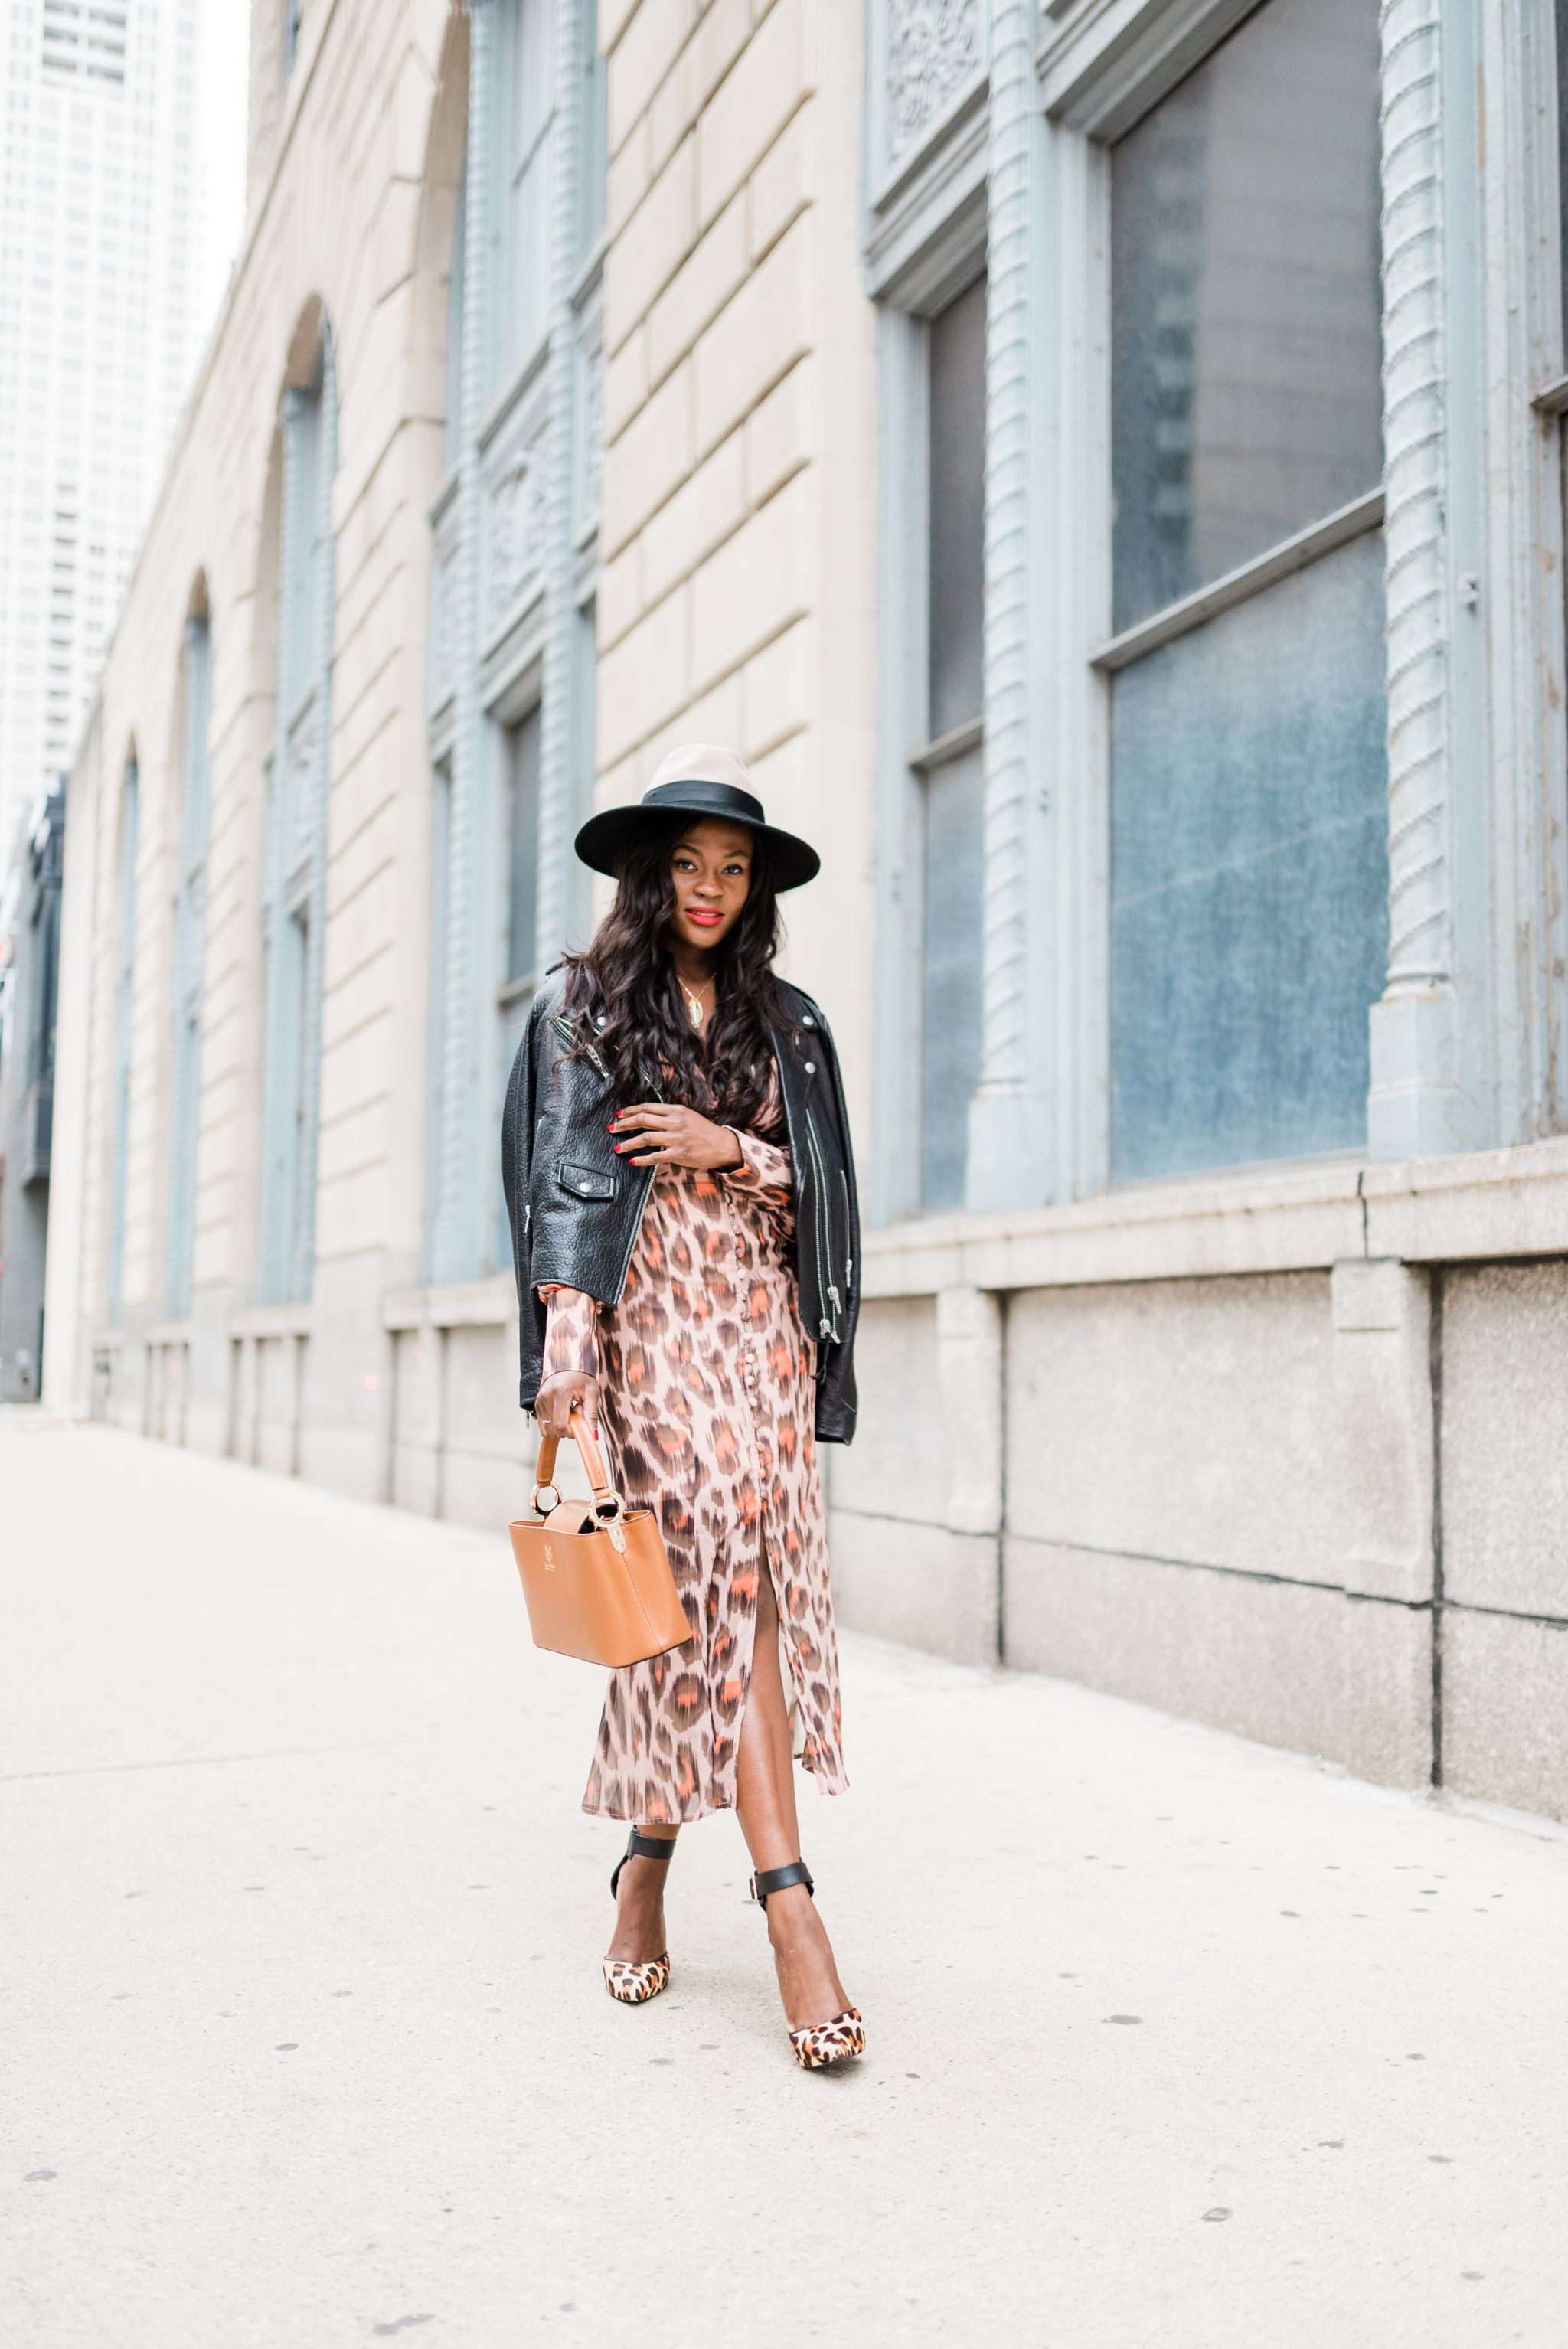 Animal Instint: How to wear leopard on leopard